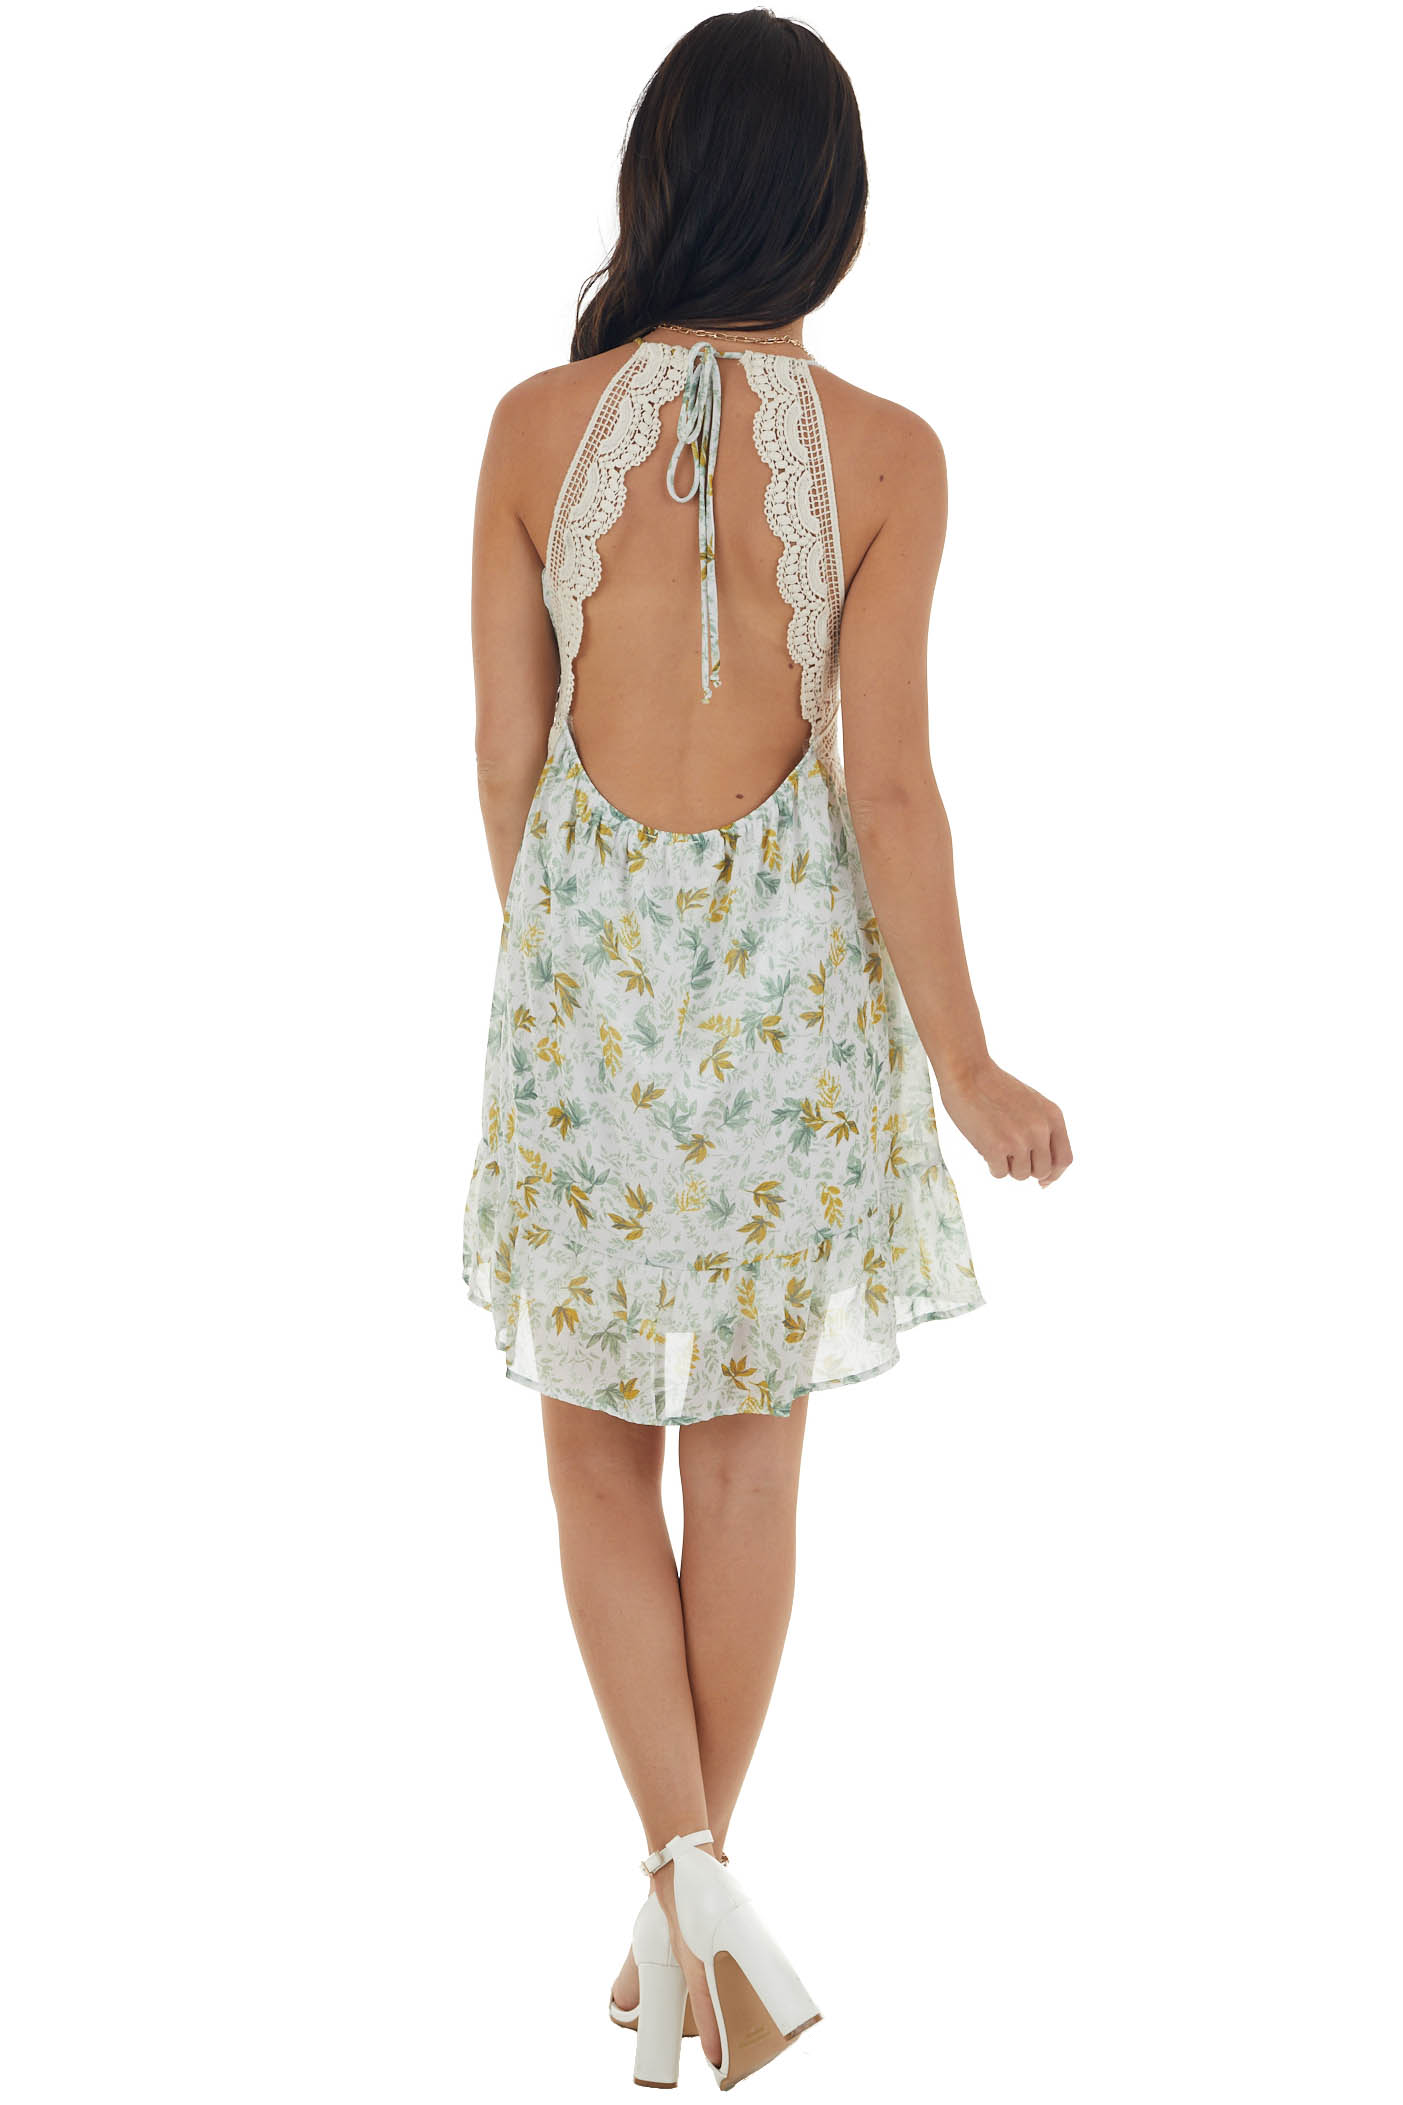 Off White and Sage Floral Print Short Dress